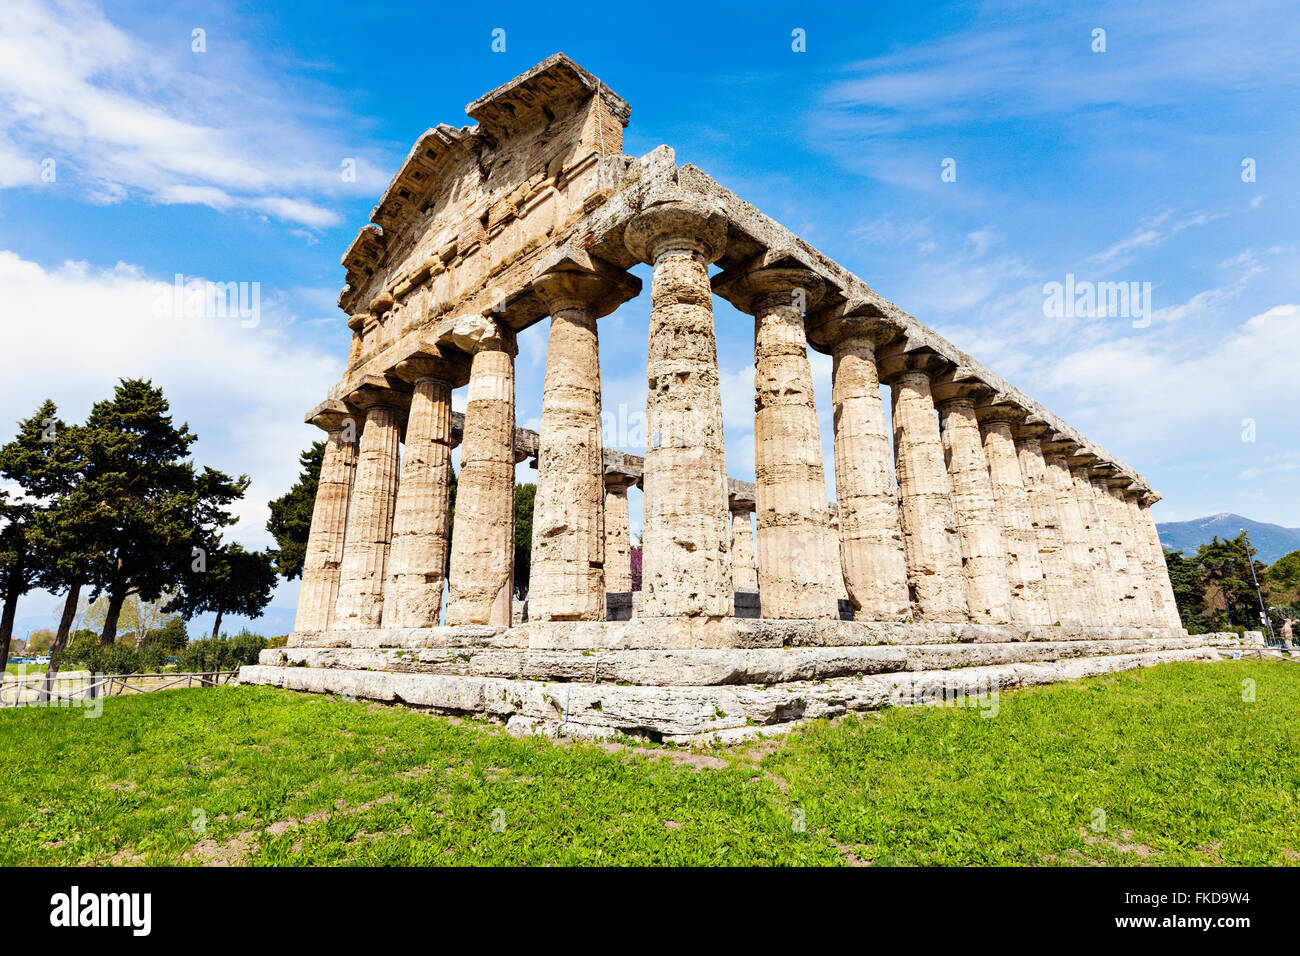 Old architectural columns of Paestum ruins on grass - Stock Image